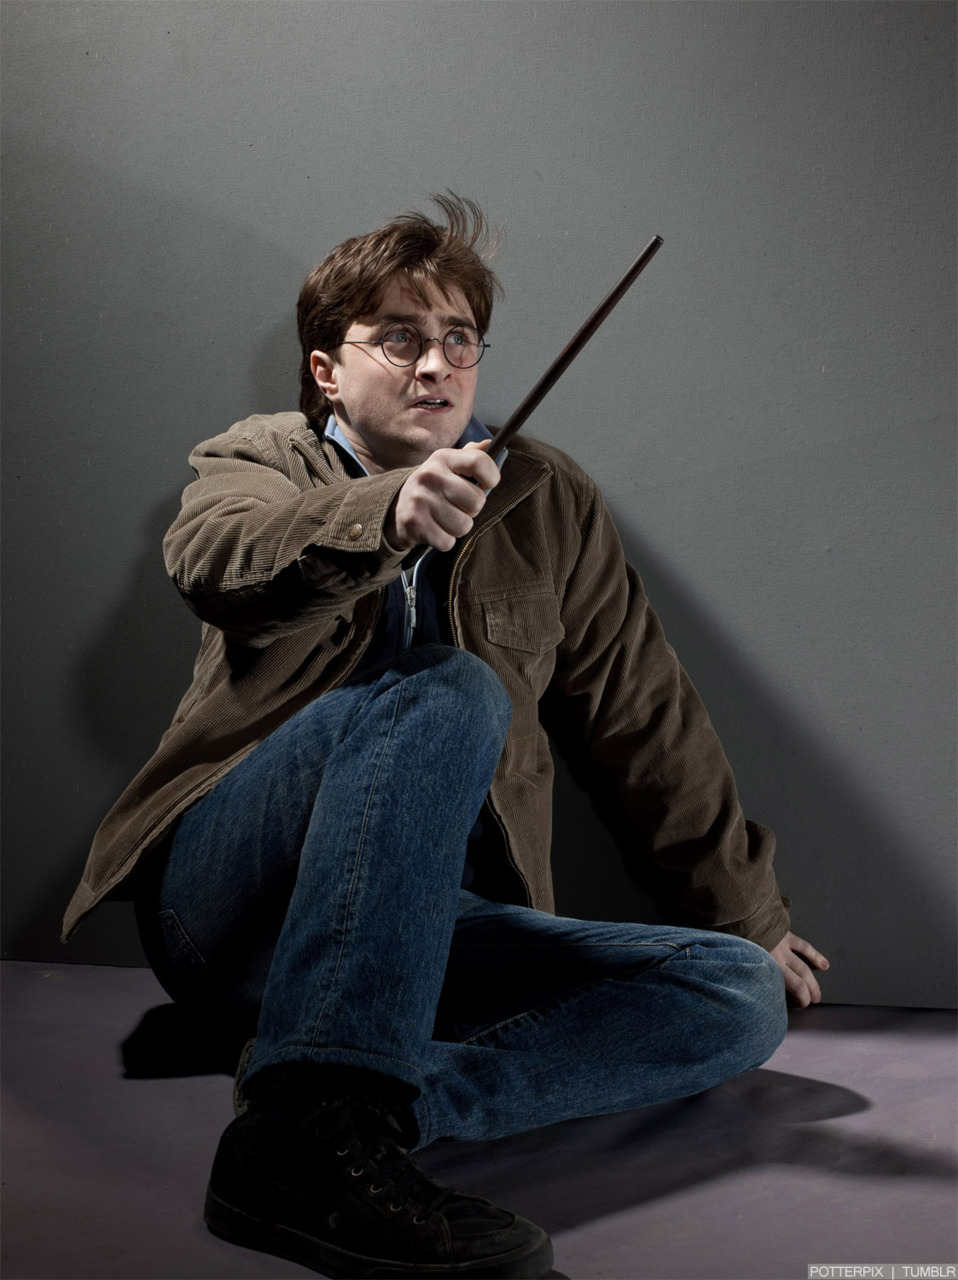 harry potter deathly hallows essay questions Harry potter and the deathly hallows is a fantasy novel written by british author j k rowling and the seventh and final novel of the harry potter series the book was released on 21 july 2007, ending the series that began in 1997 with the publication of harry potter and the philosopher's stone.